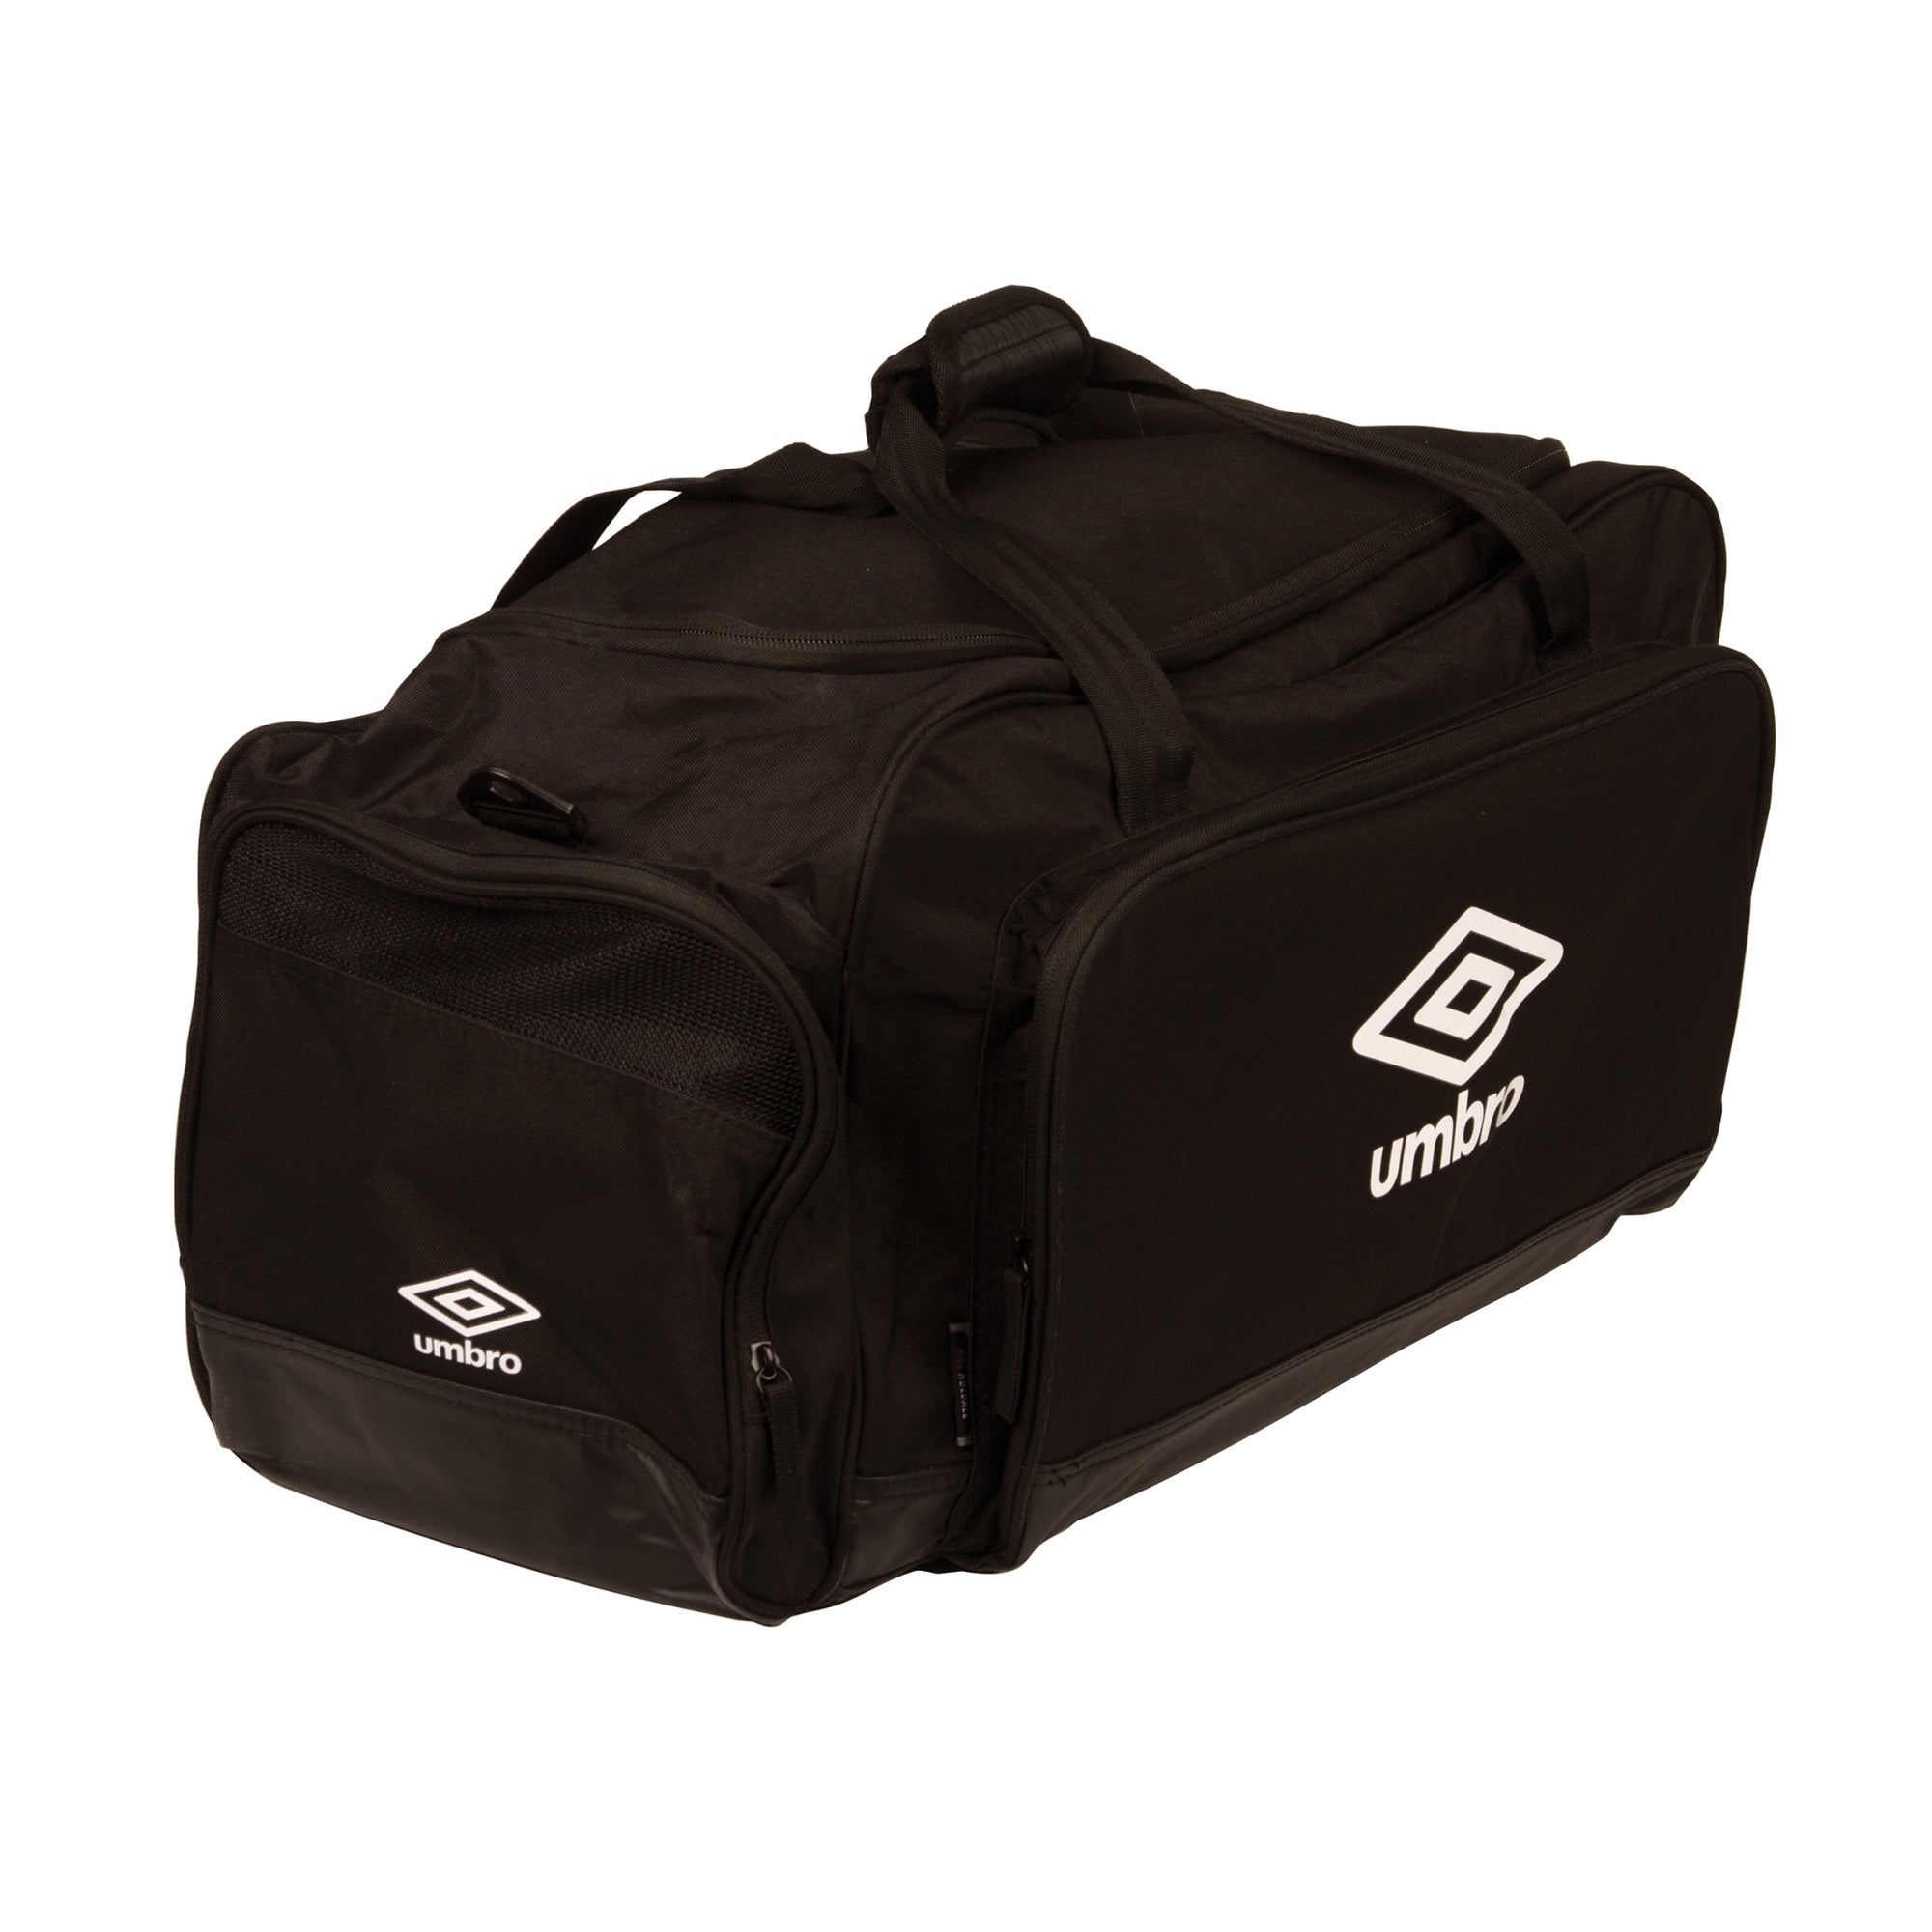 Umbro Large Holdall - Black/White